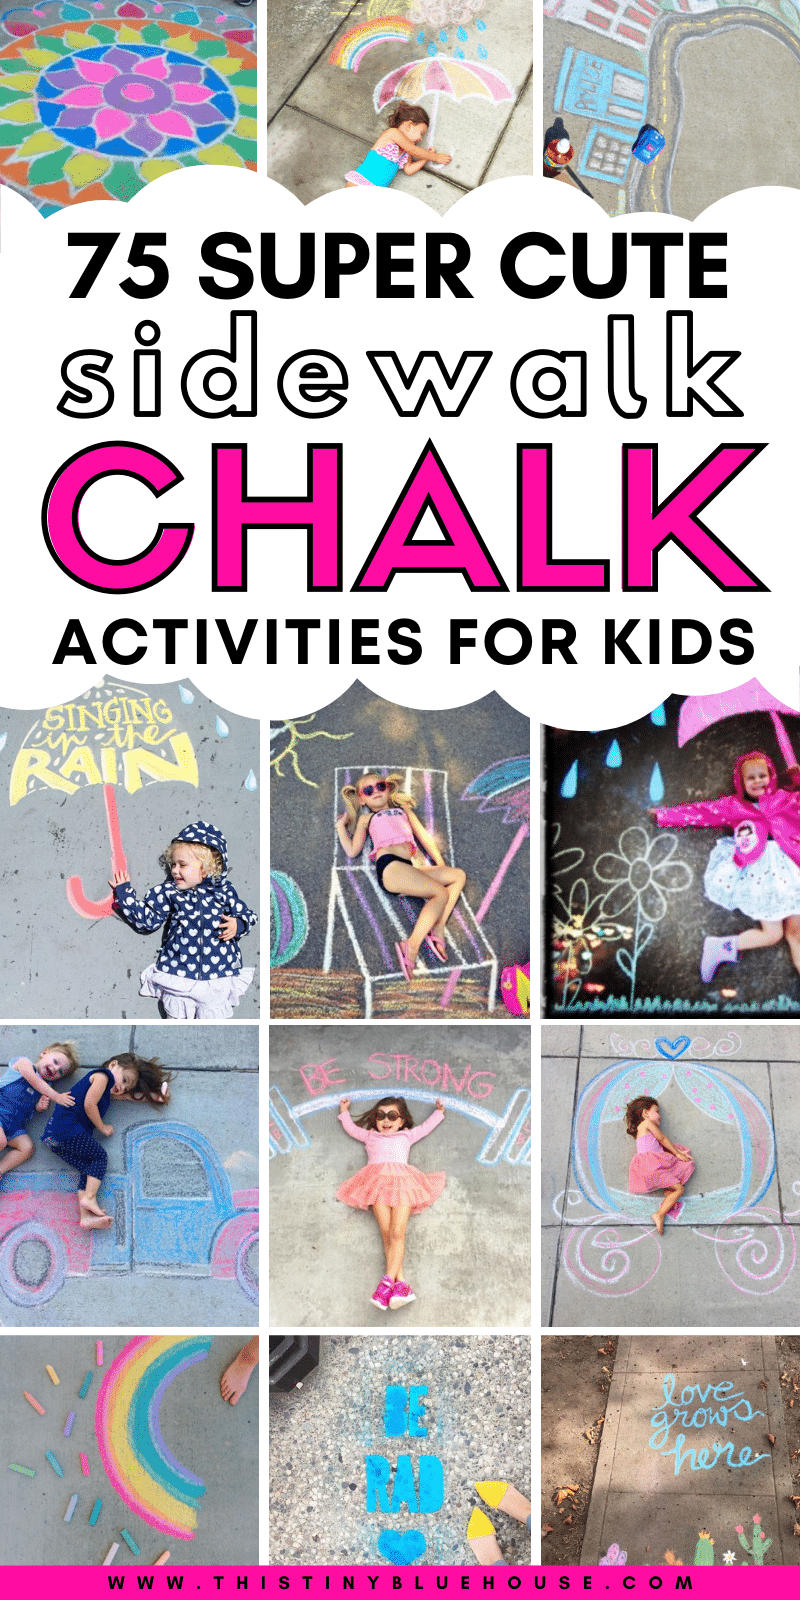 Here are 75+ creative, fun and entertaining sidewalk chalk art ideas for kids and adults alike. These creative sidewalk art ideas are a great way to enjoy spring and summer days being creative with the kids. These super fun chalk art projects are a great way to encourage kids to be creative while enjoying the great outdoors. #sidewalkchalk #sidewalkchalkart #sidewalkchalkartideas #sidewalkchalkartforkids #sidewalkchalkideas #sidewalkchalkartDIY #creativesidewalkchalkart #easysidewhalkchalkart